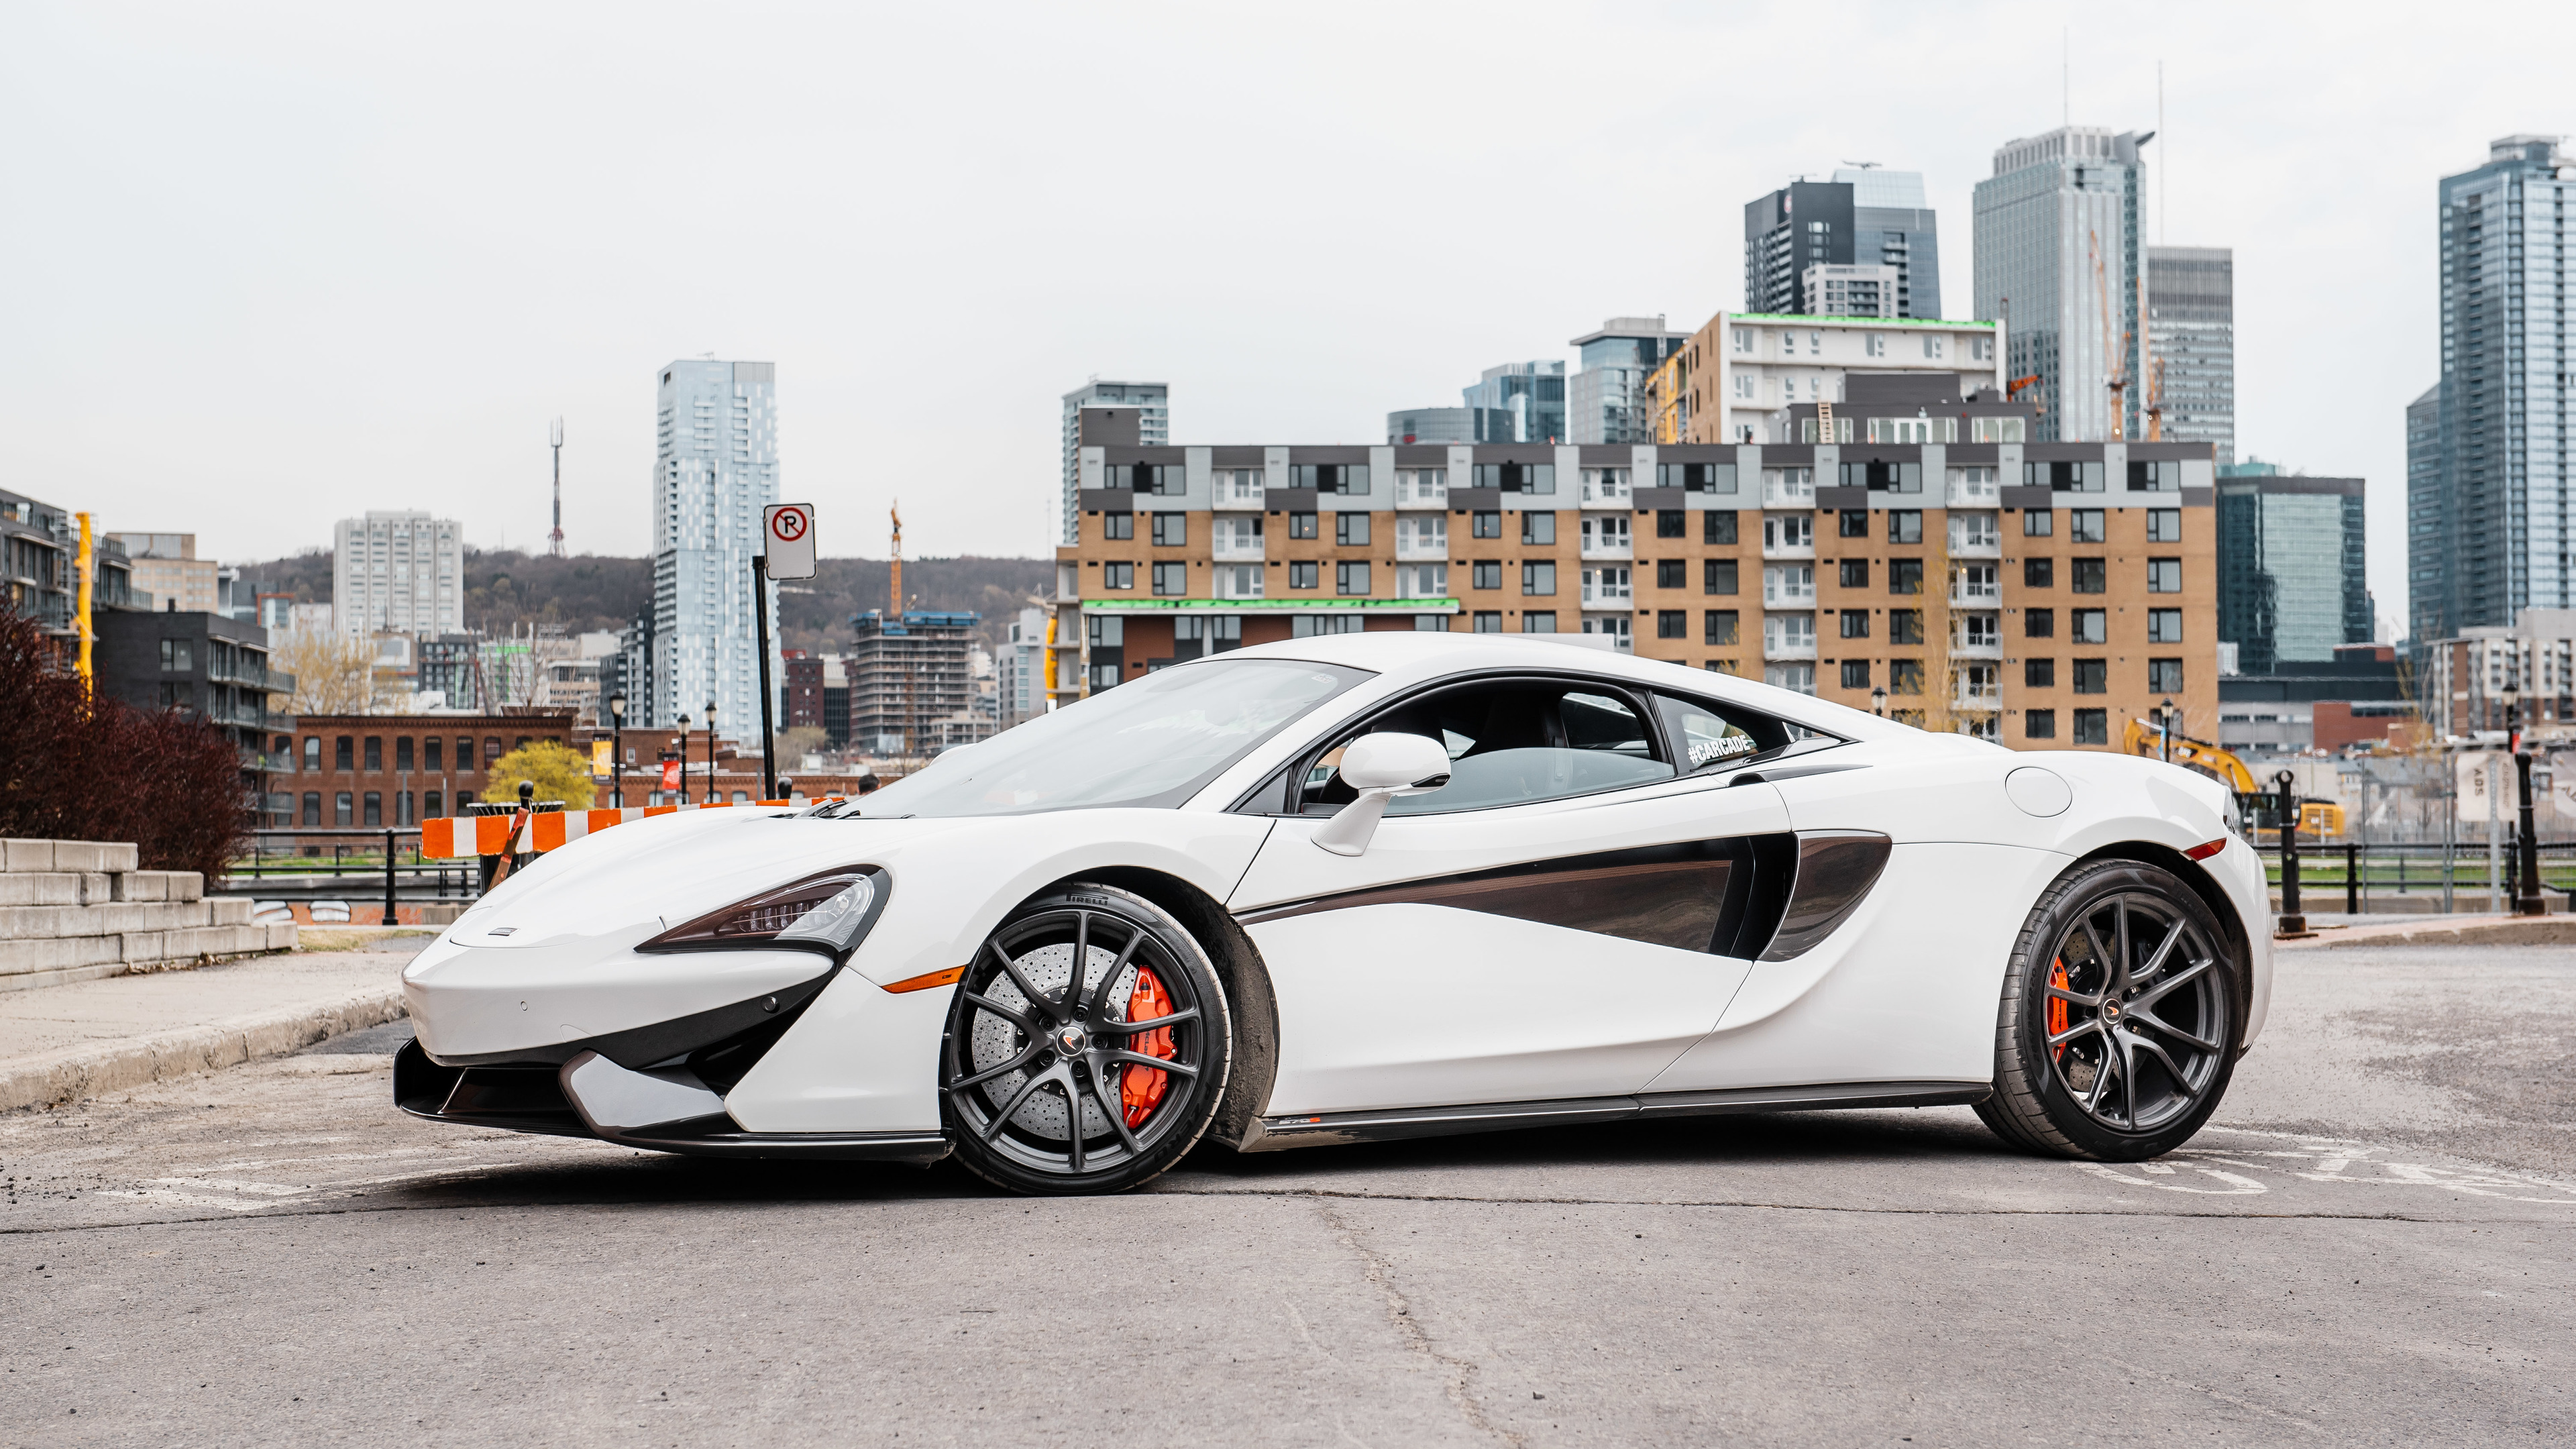 mclaren 2019 1569188220 - Mclaren 2019 - mclaren wallpapers, hd-wallpapers, cars wallpapers, 5k wallpapers, 4k-wallpapers